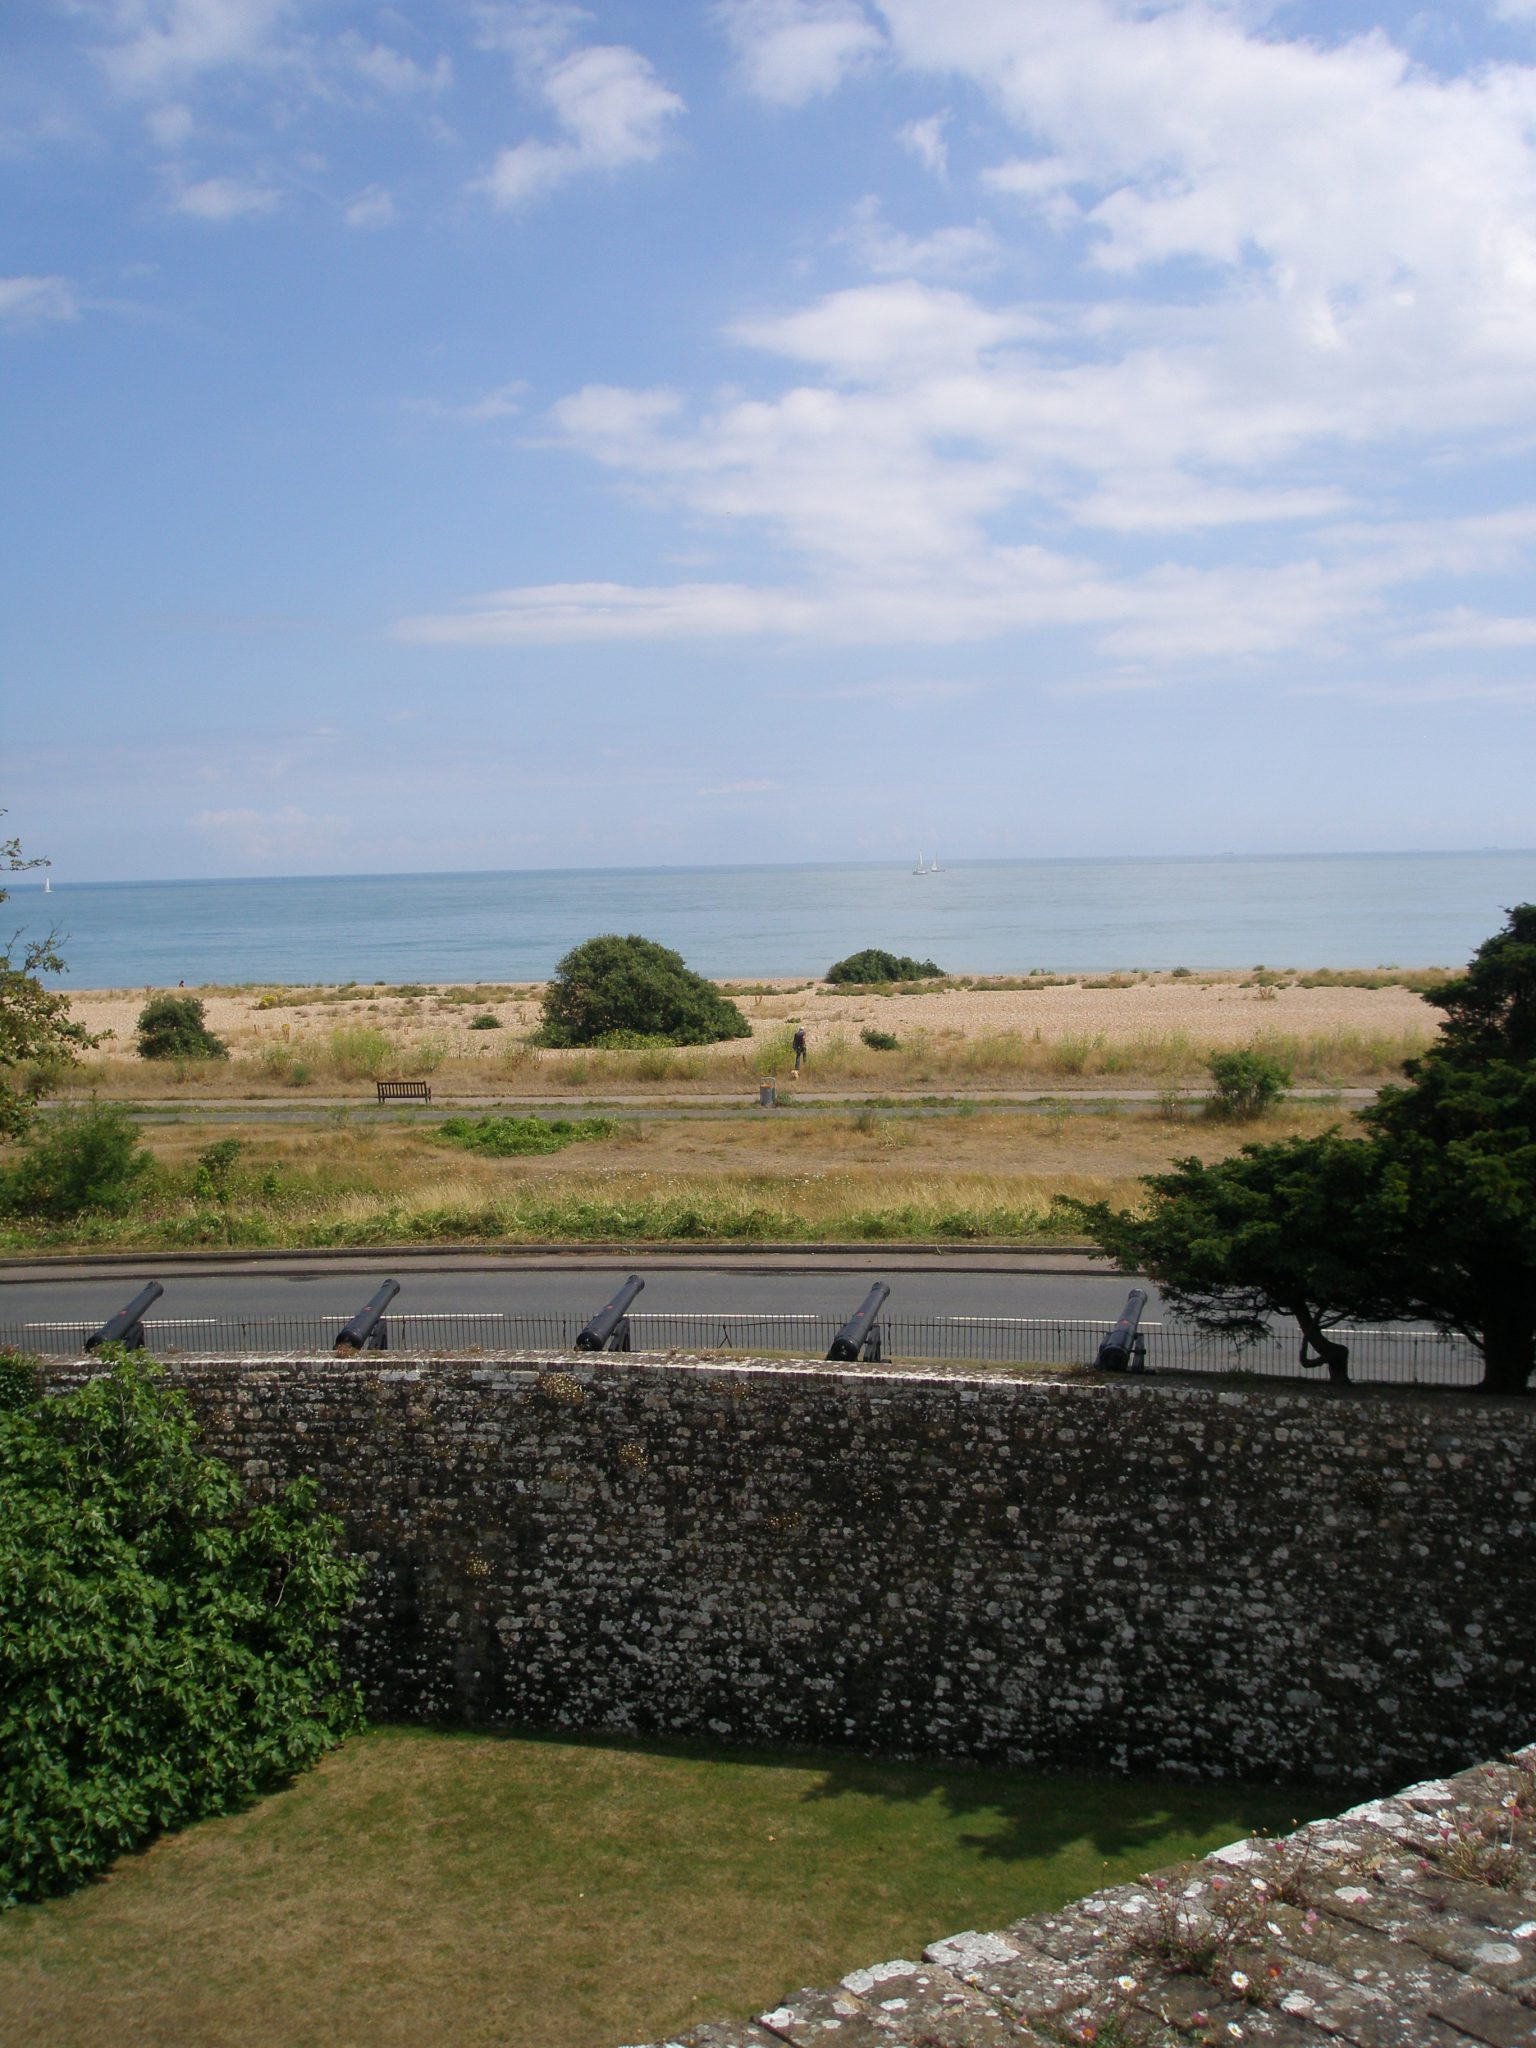 Another view from the Ramparts.